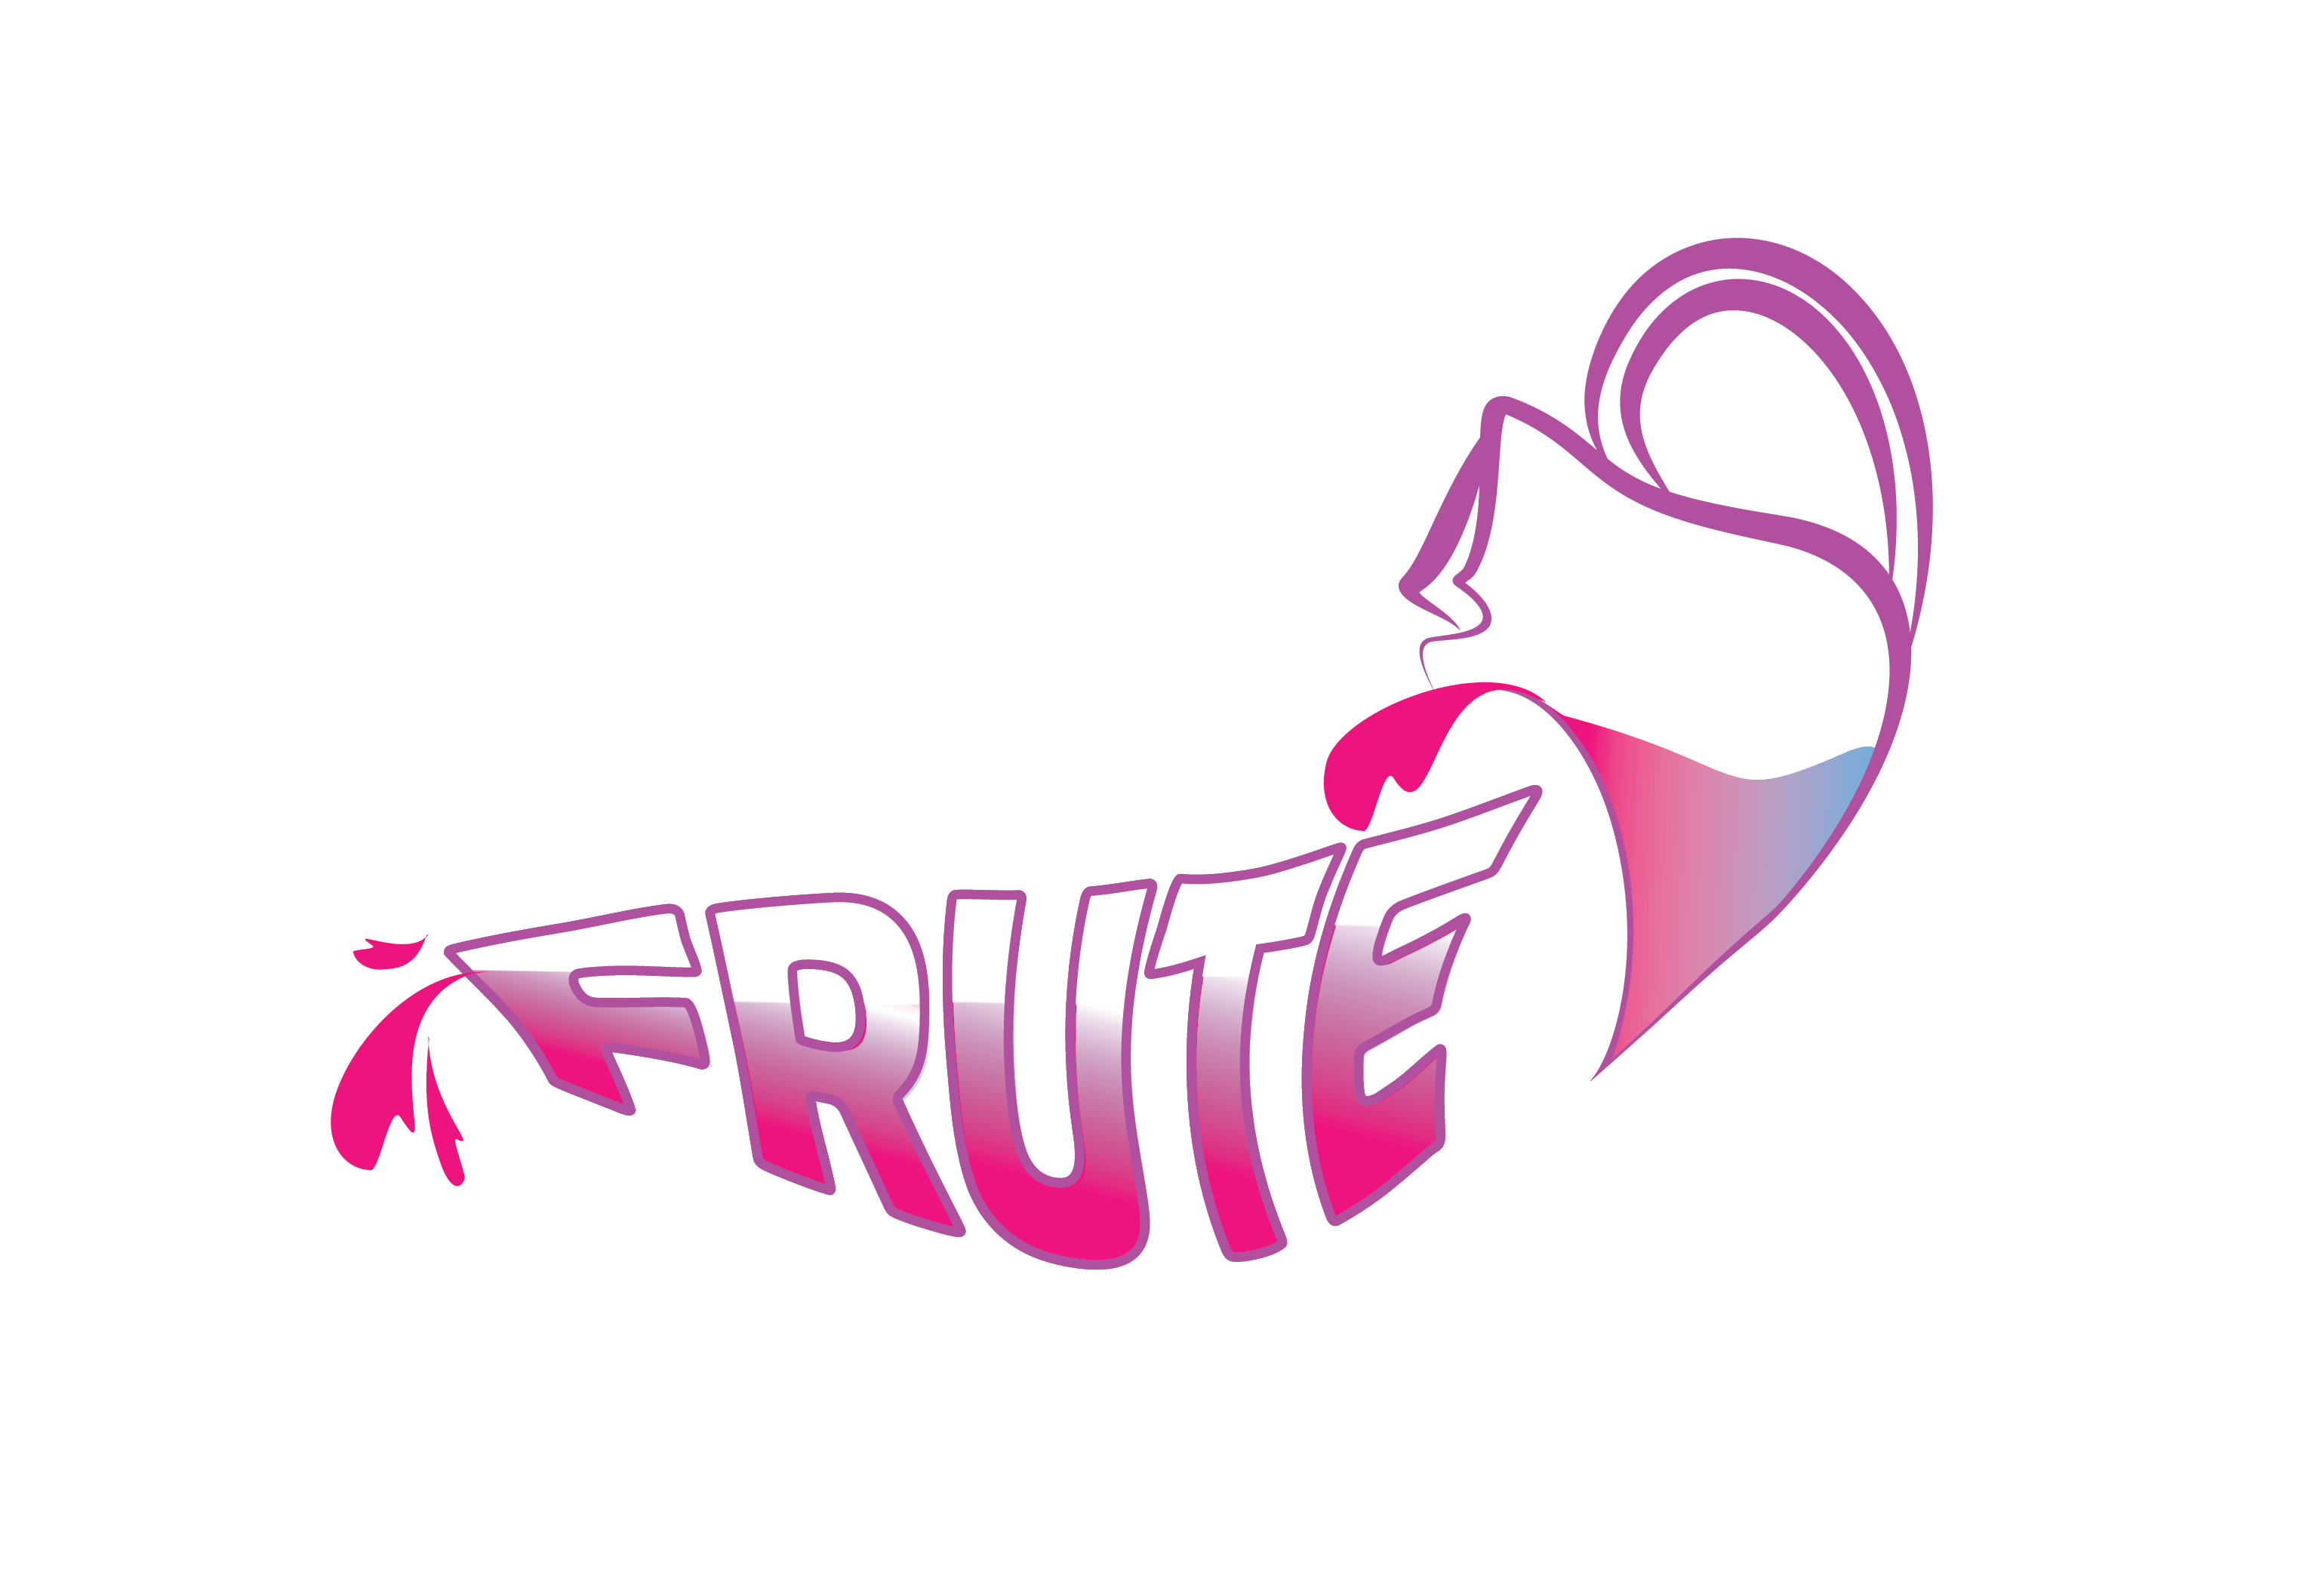 Logo Design by Tim Holley - Entry No. 90 in the Logo Design Contest Imaginative Logo Design for Fruté.